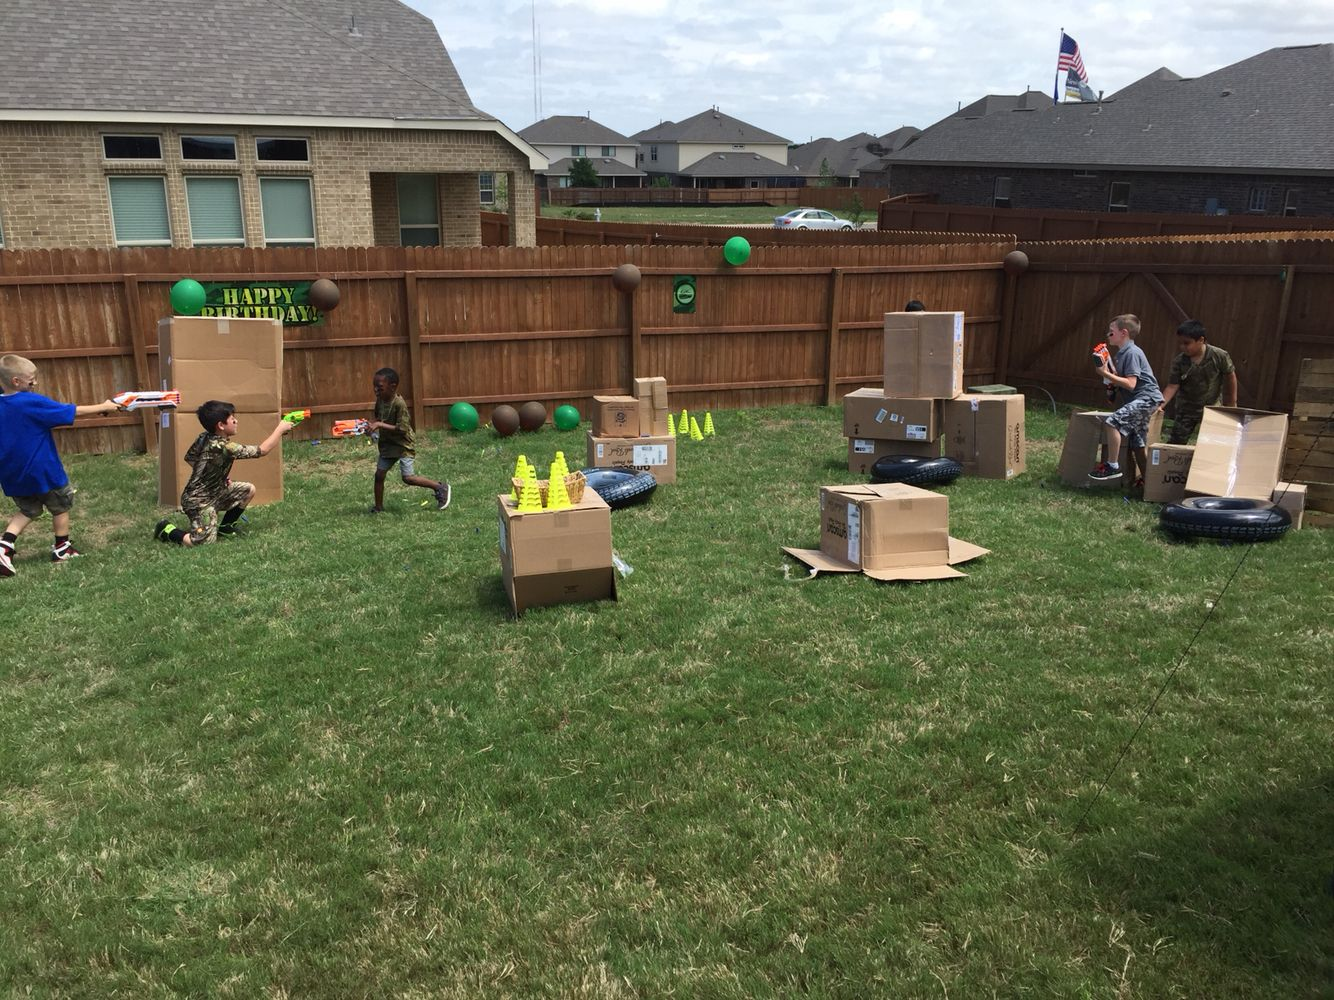 nerf gun game army guy shootout army guys cardboard boxes and army